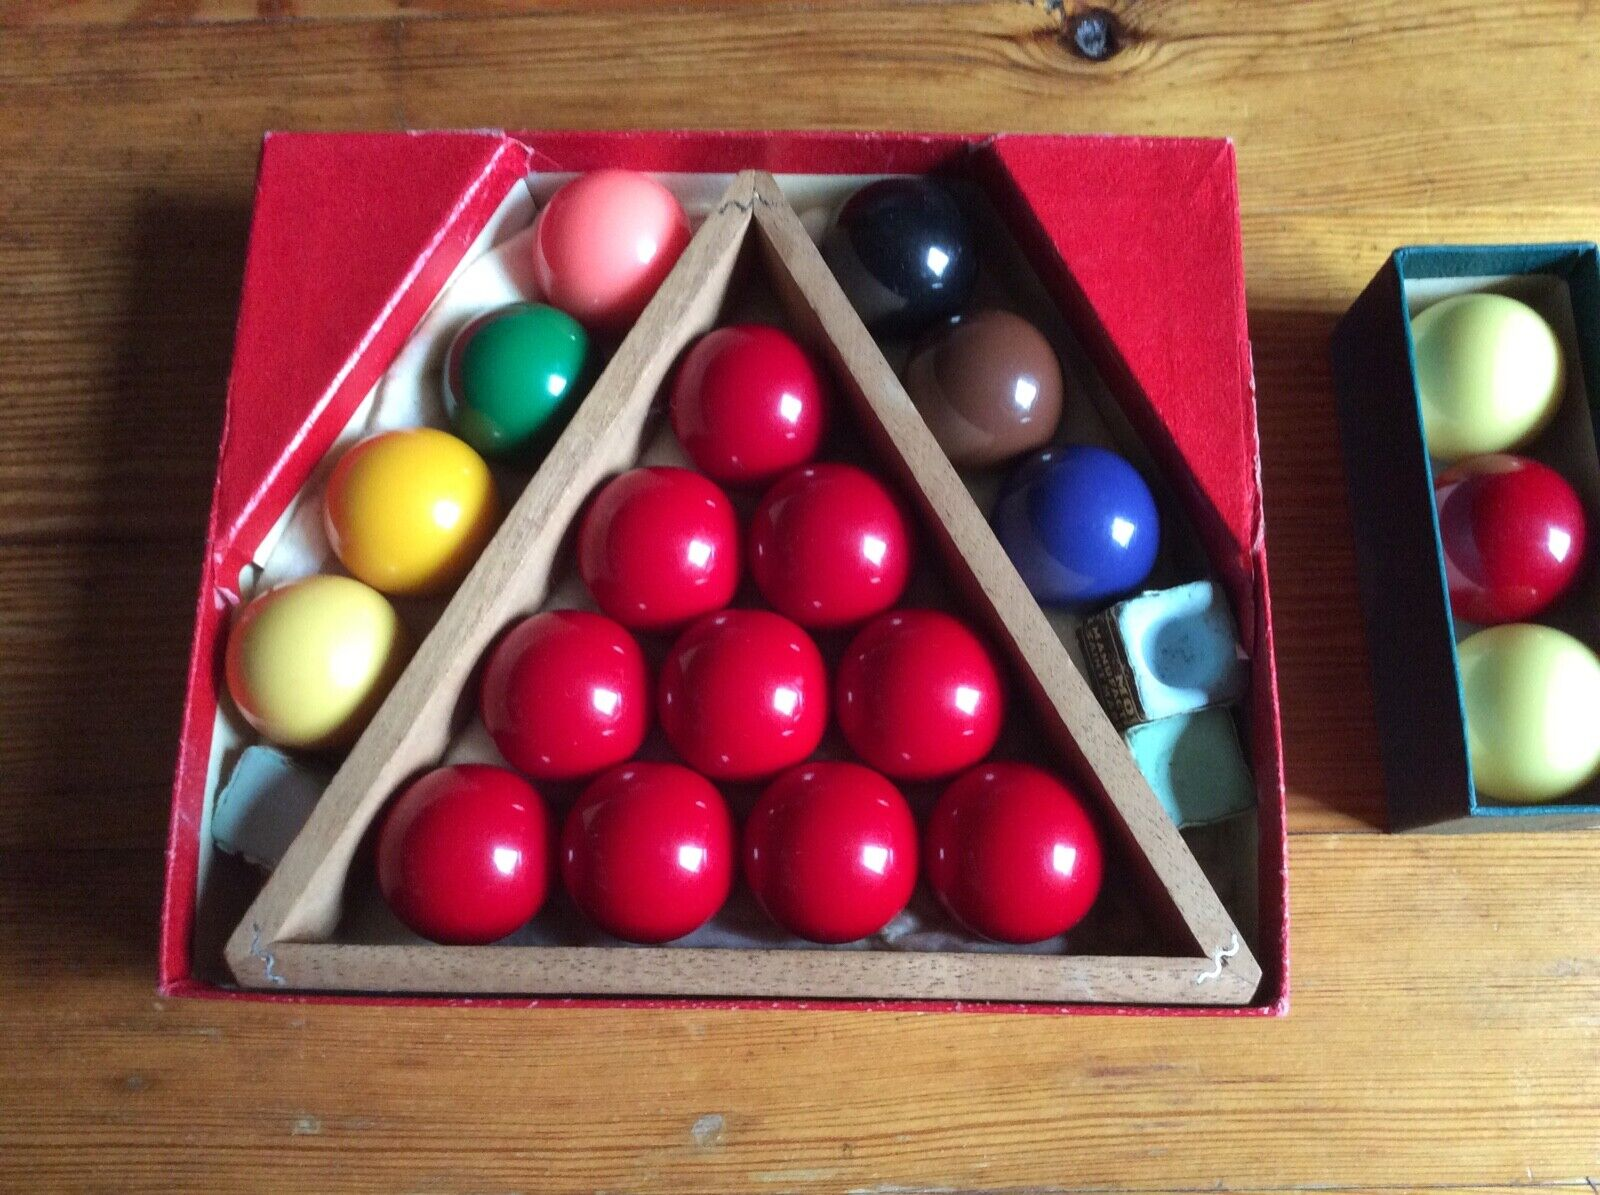 Snooker and billiard balls, and score display